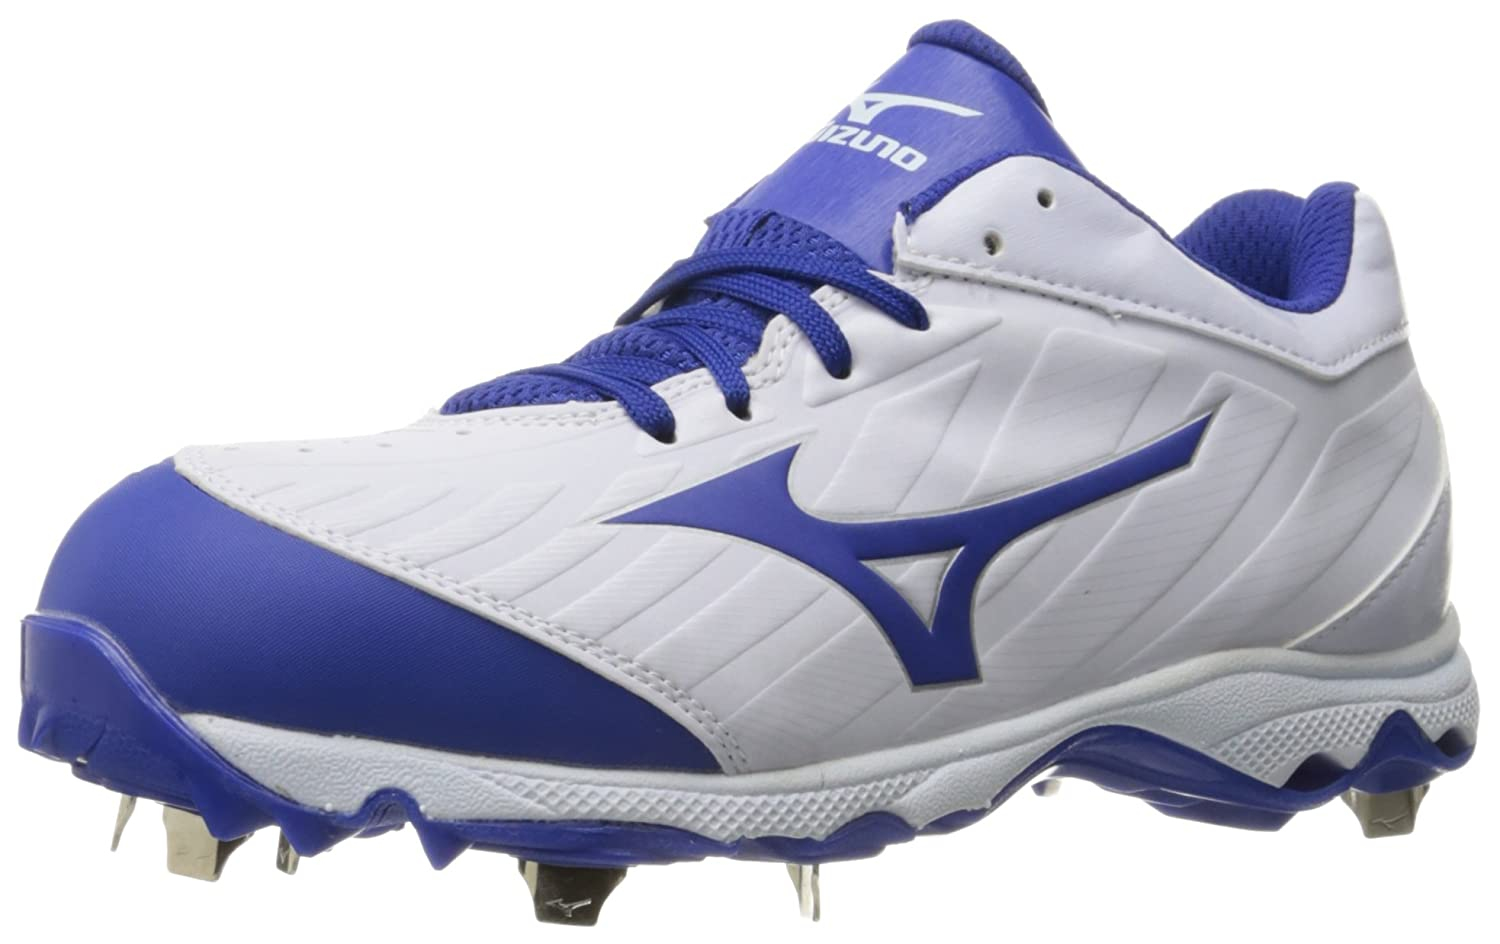 Mizuno Womens 9-Spike Advanced Sweep 3 Low Top Lace Up Baseball Shoes B01HQE1LJG 8.5 C/D US|ホワイト-ロイヤル ホワイト-ロイヤル 8.5 C/D US